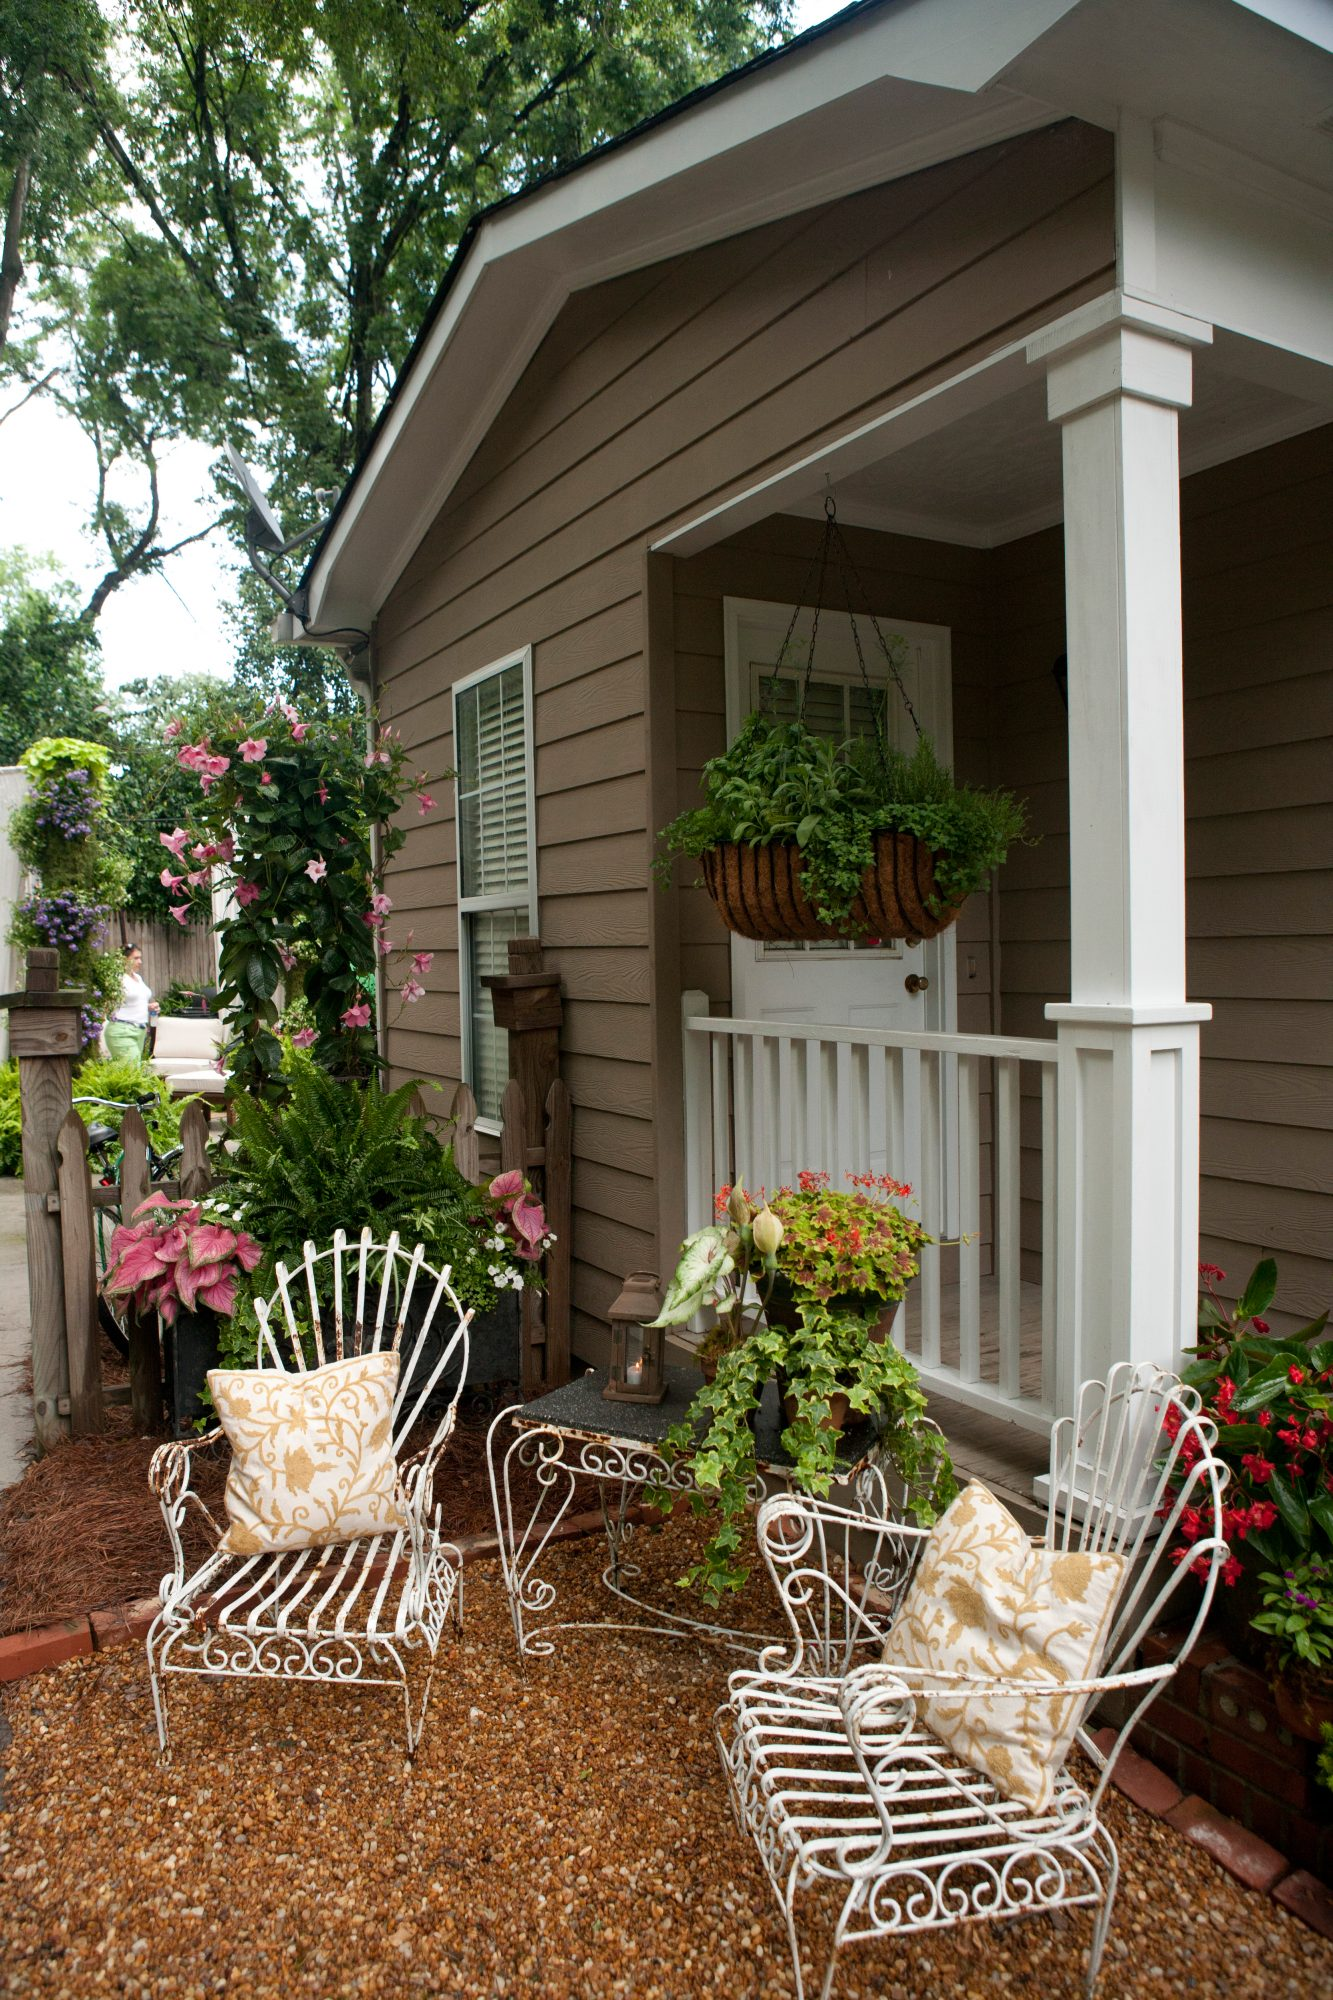 See how an uninviting back door was transformed with plants, seating, and window boxes.